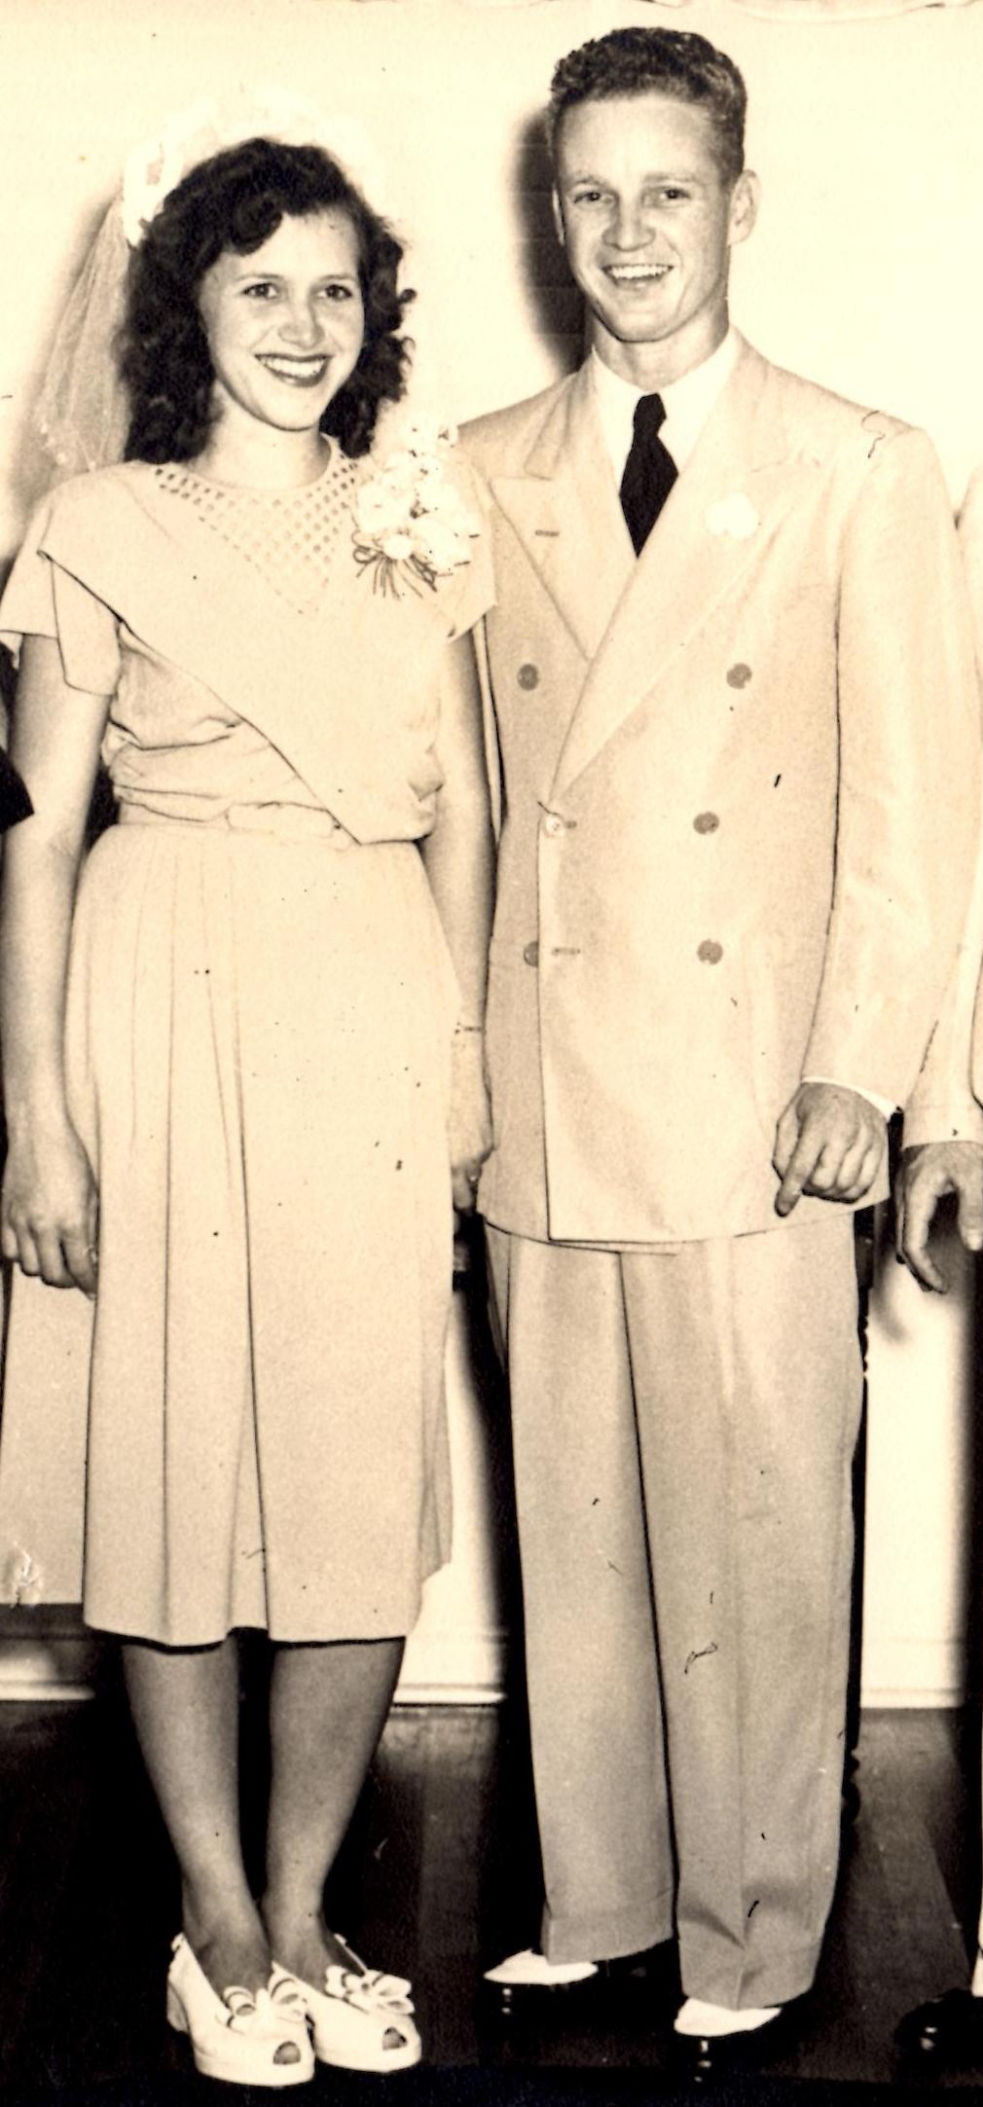 DNA test leads sisters to meet 70 years later